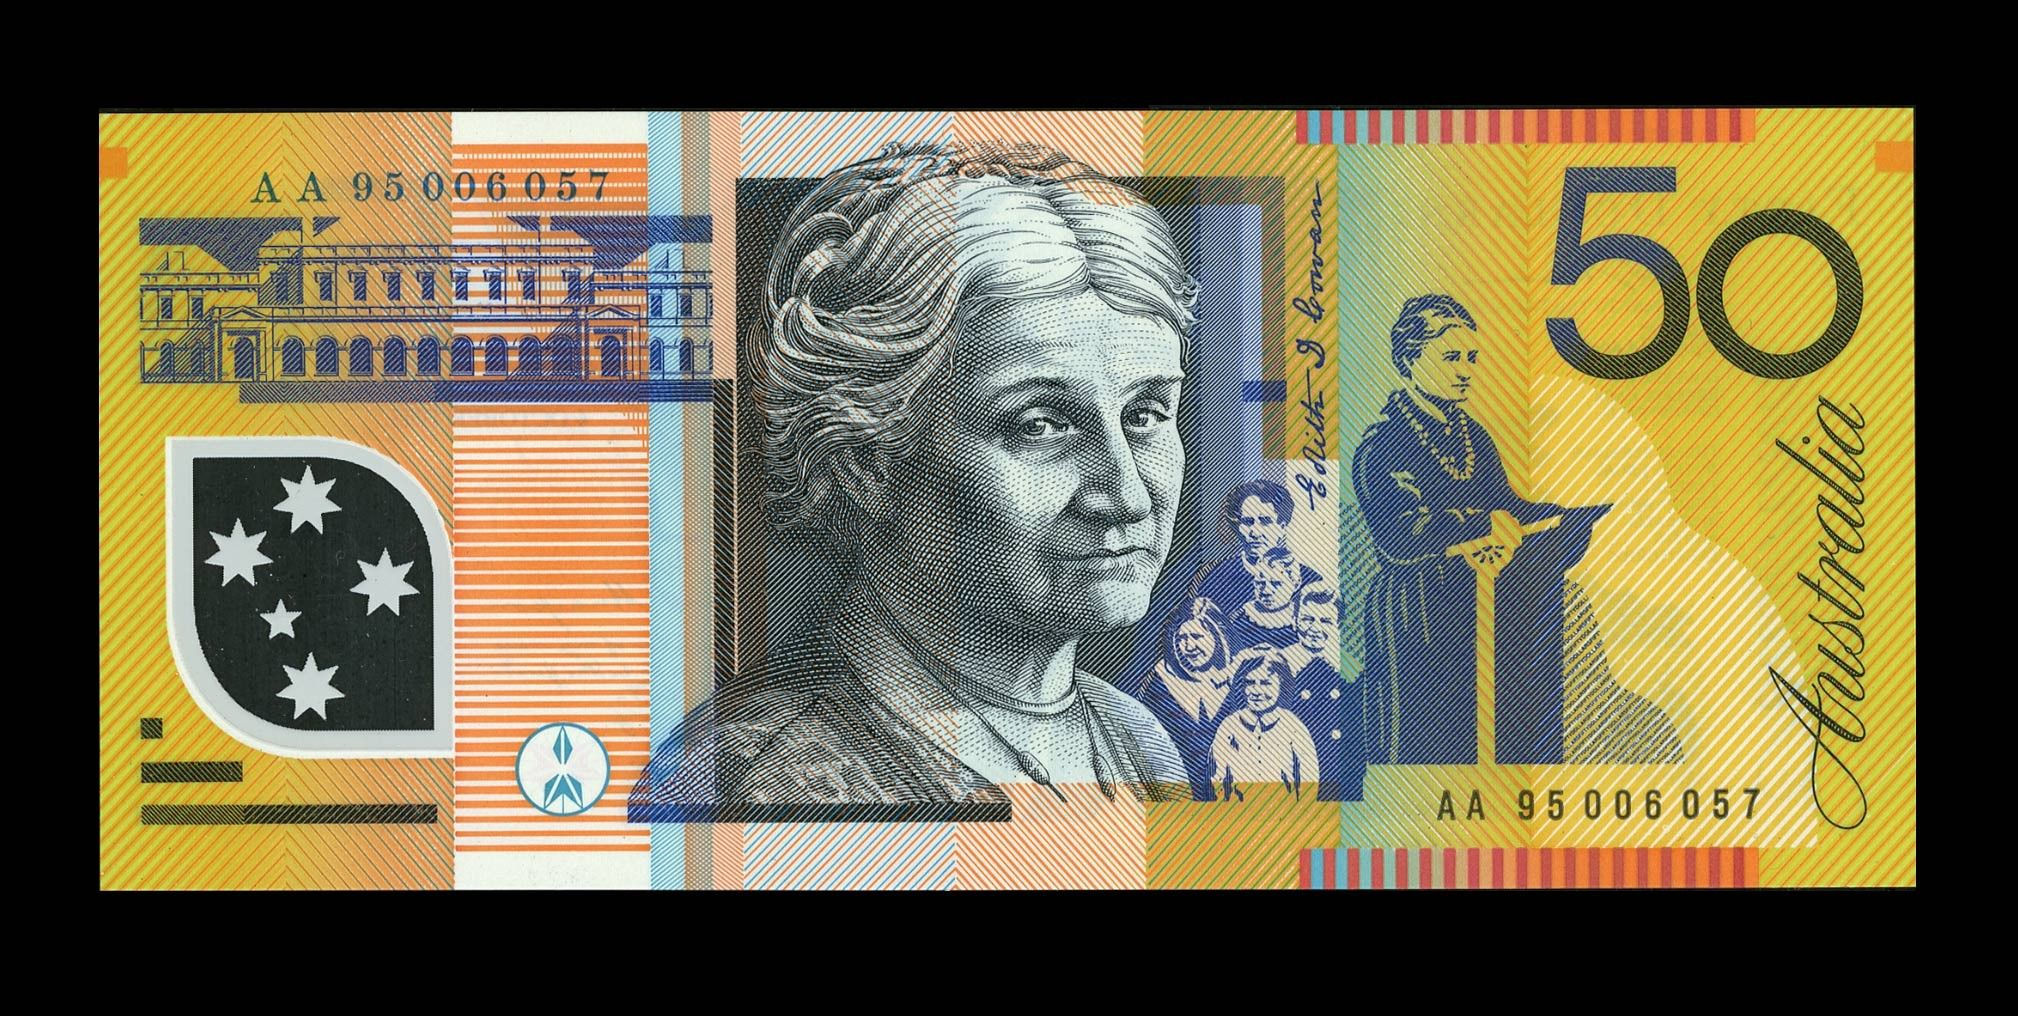 Australian 50 Note Love The Vertical Banding Of Colors And Hatching Bank Notes Dollar Banknote Australia